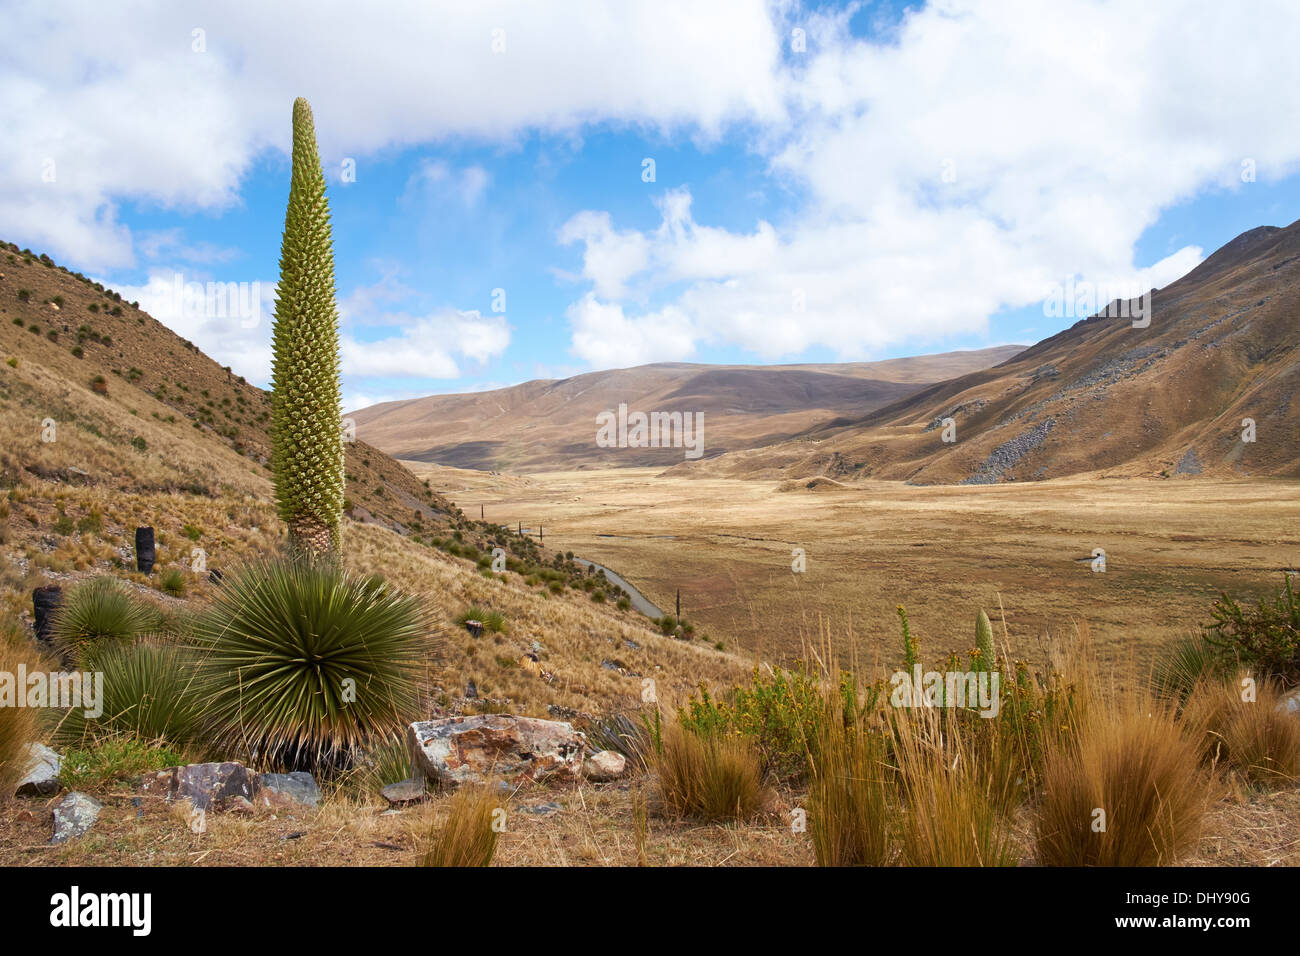 Puya Raimondii Plants high up in the Peruvian Andes, South America. Stock Photo